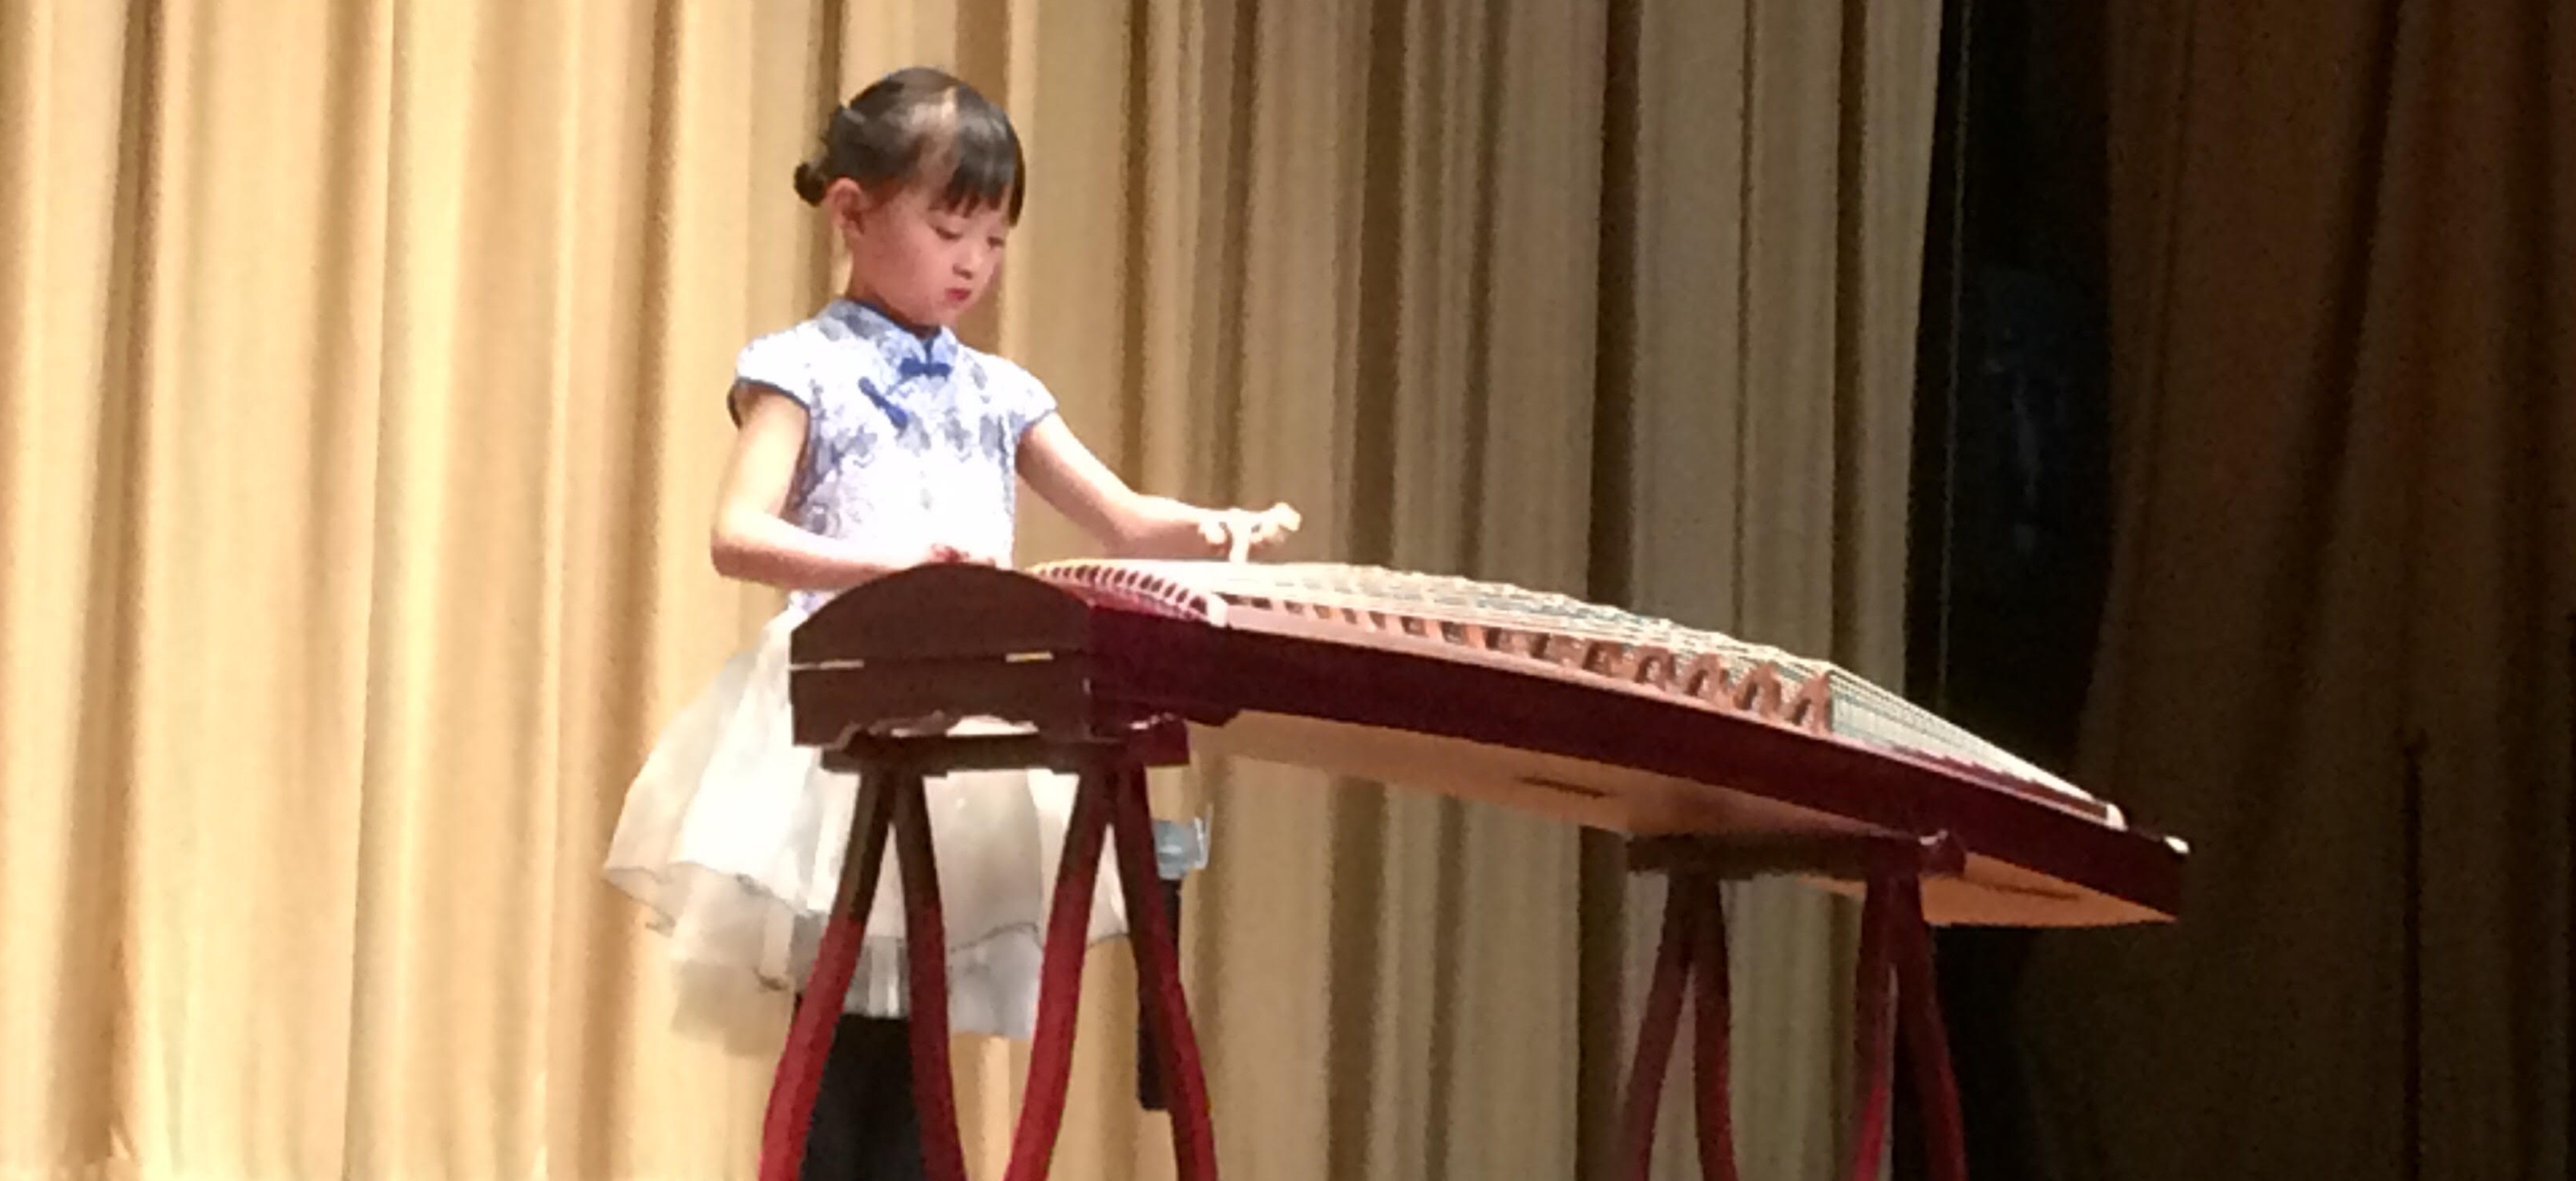 Alyson Plays the Guzheng